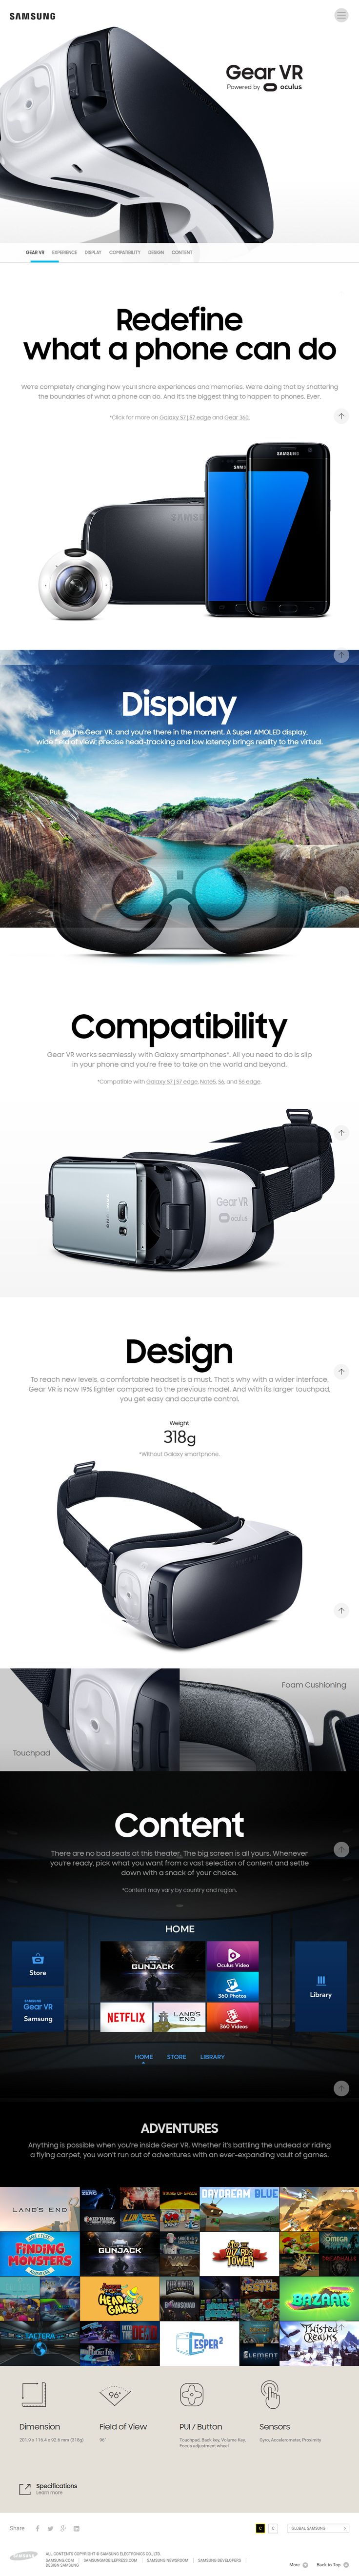 Samsung Gear VR: http://www.samsung.com/global/galaxy/wearables/gear-vr/